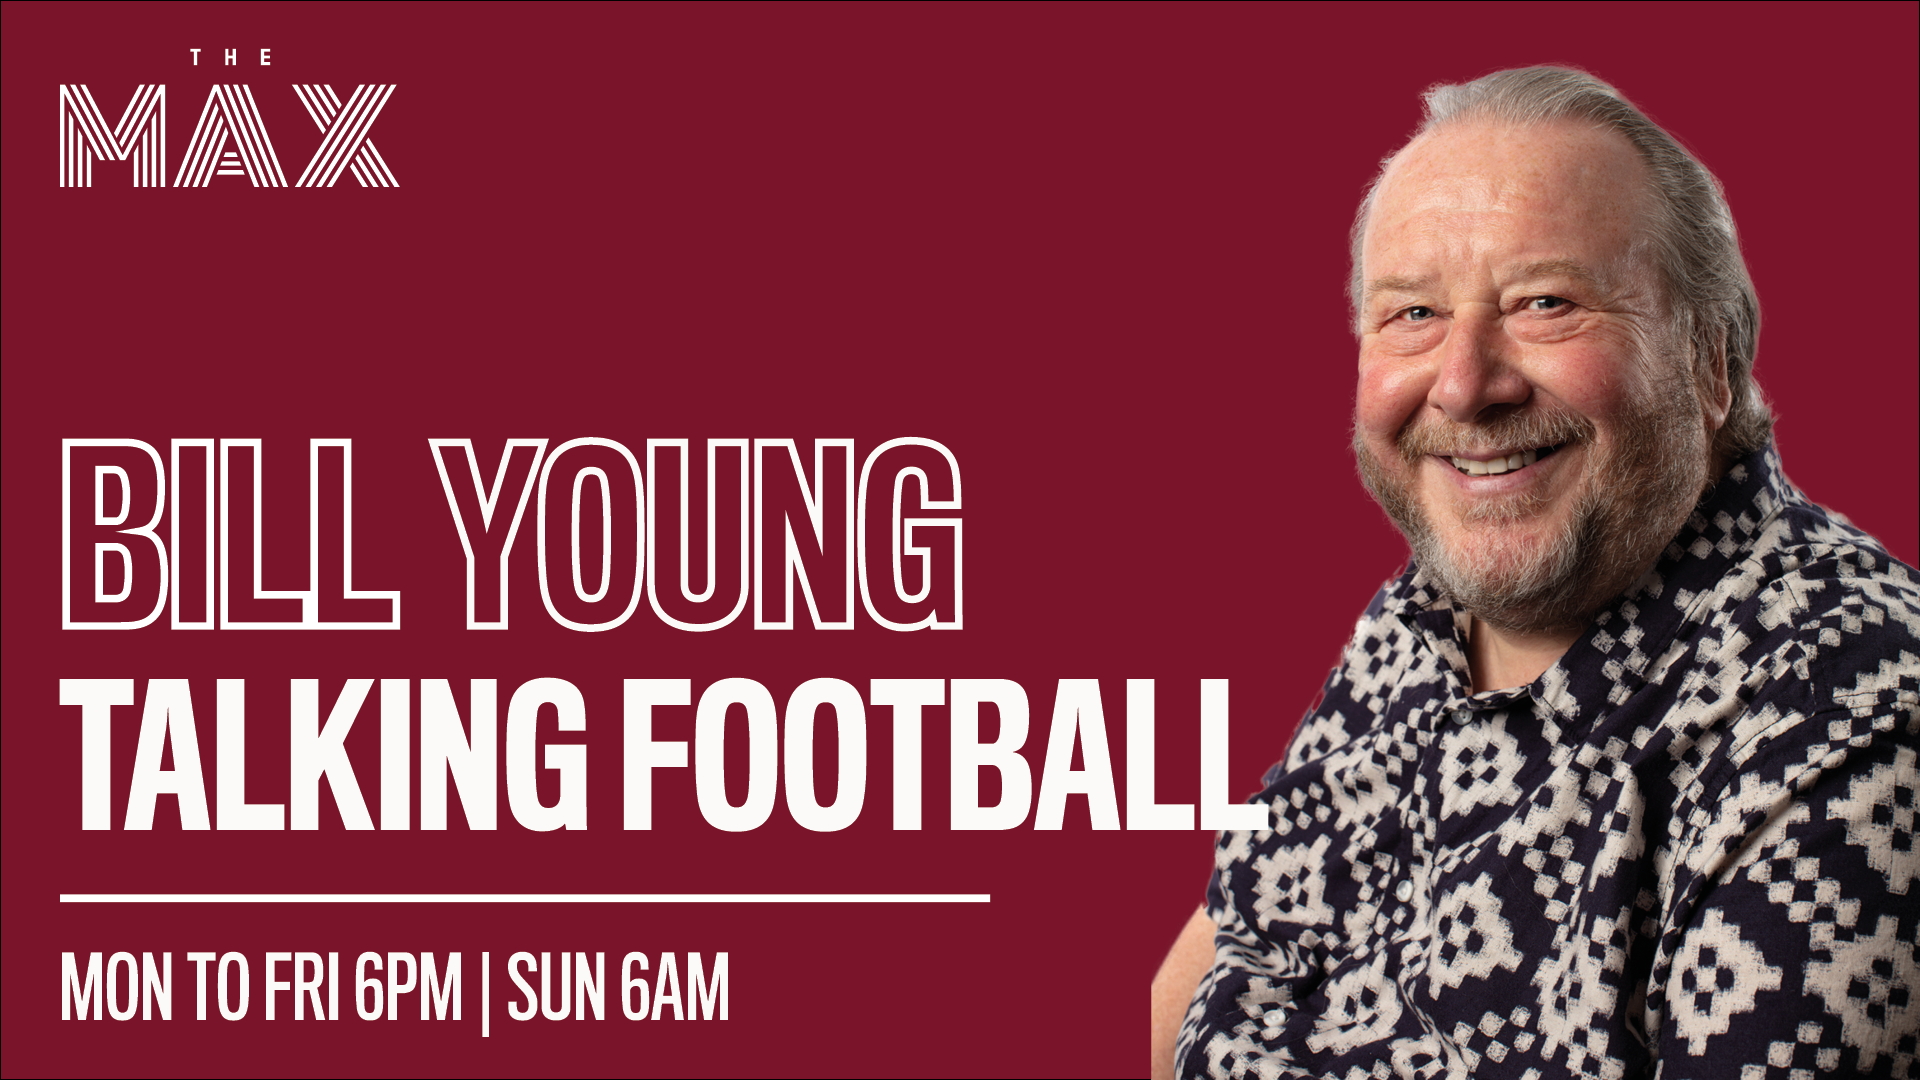 Talking Football with Bill Young - Thursday 4th February